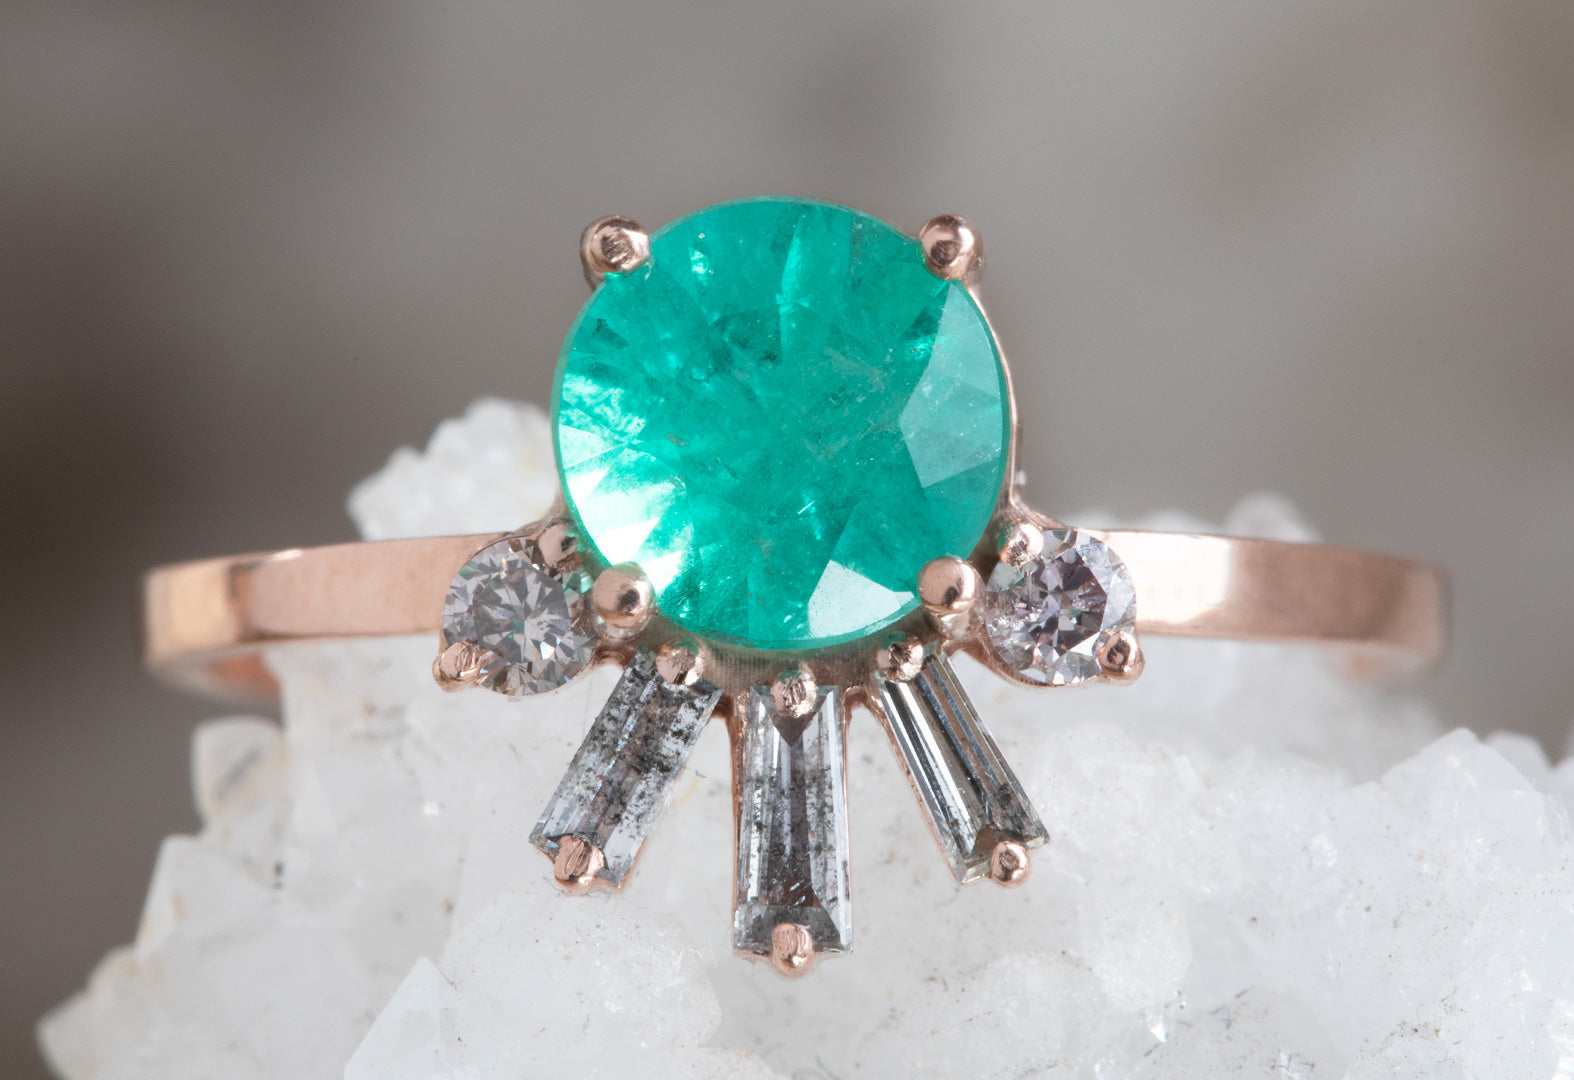 Brilliant-Cut Emerald Engagement Ring with Baguette Diamond Sunburst